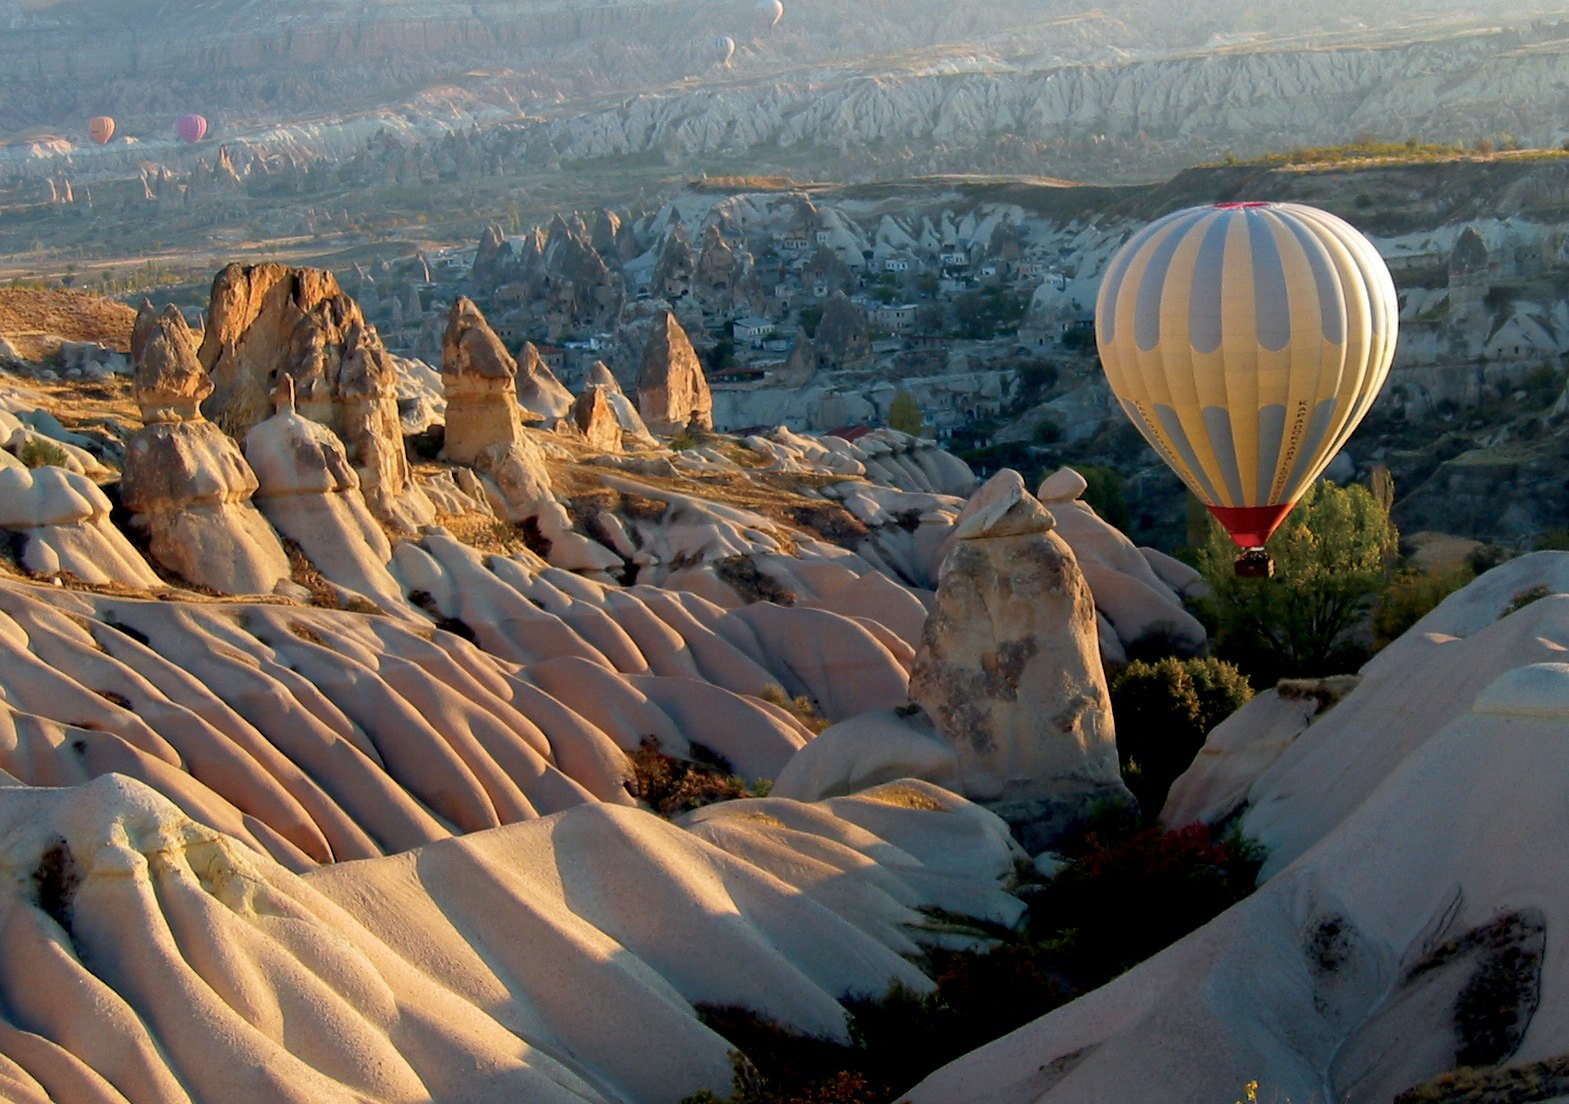 CAPPADOKIA 3 DAYS HALF BOARD